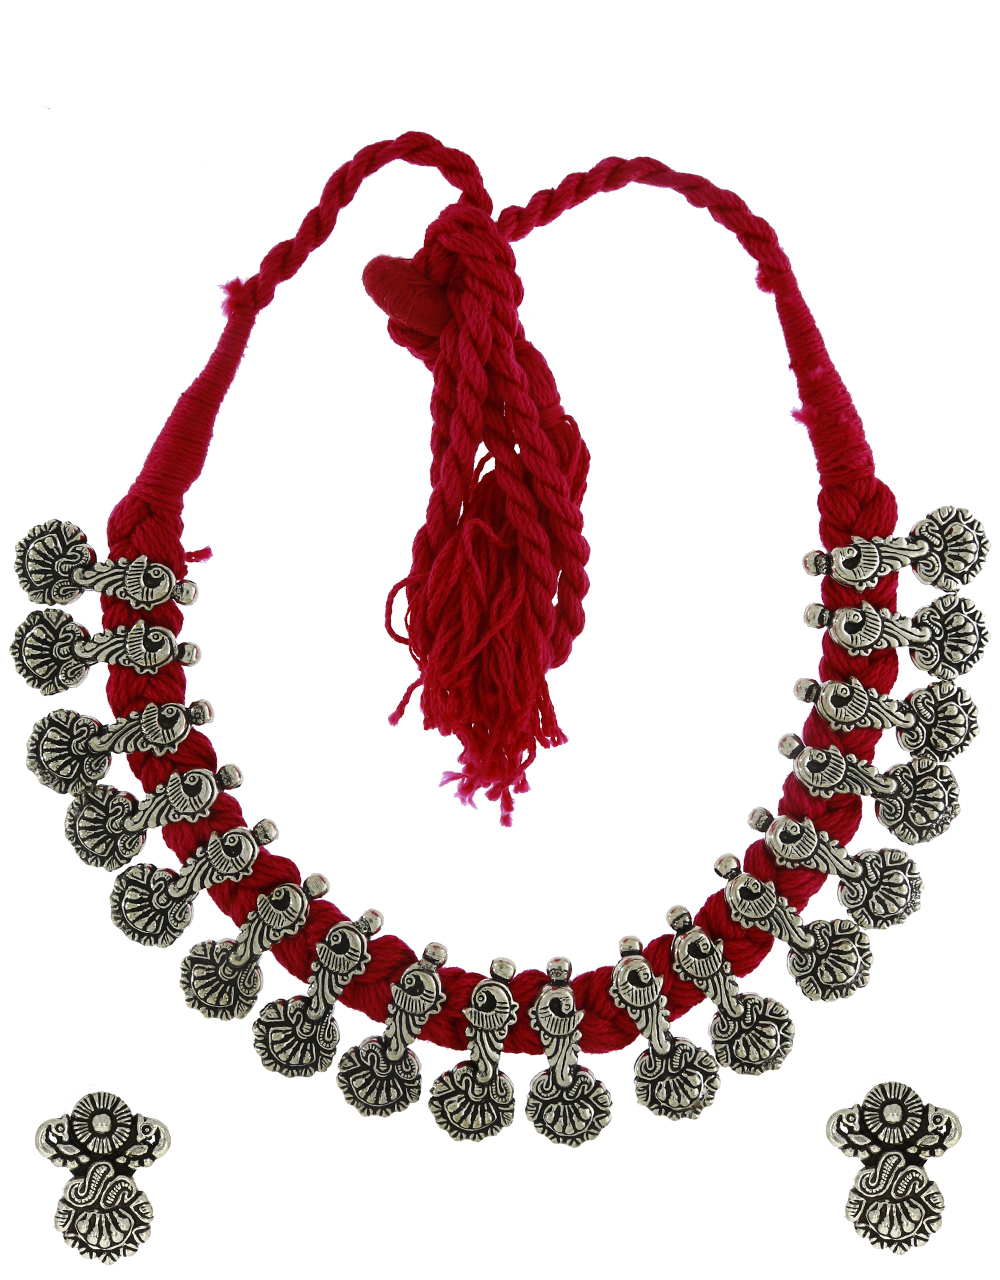 Anuradha Art Oxidized Finish Designer Thread Necklace For Women|Silver Necklace For Stylish Women